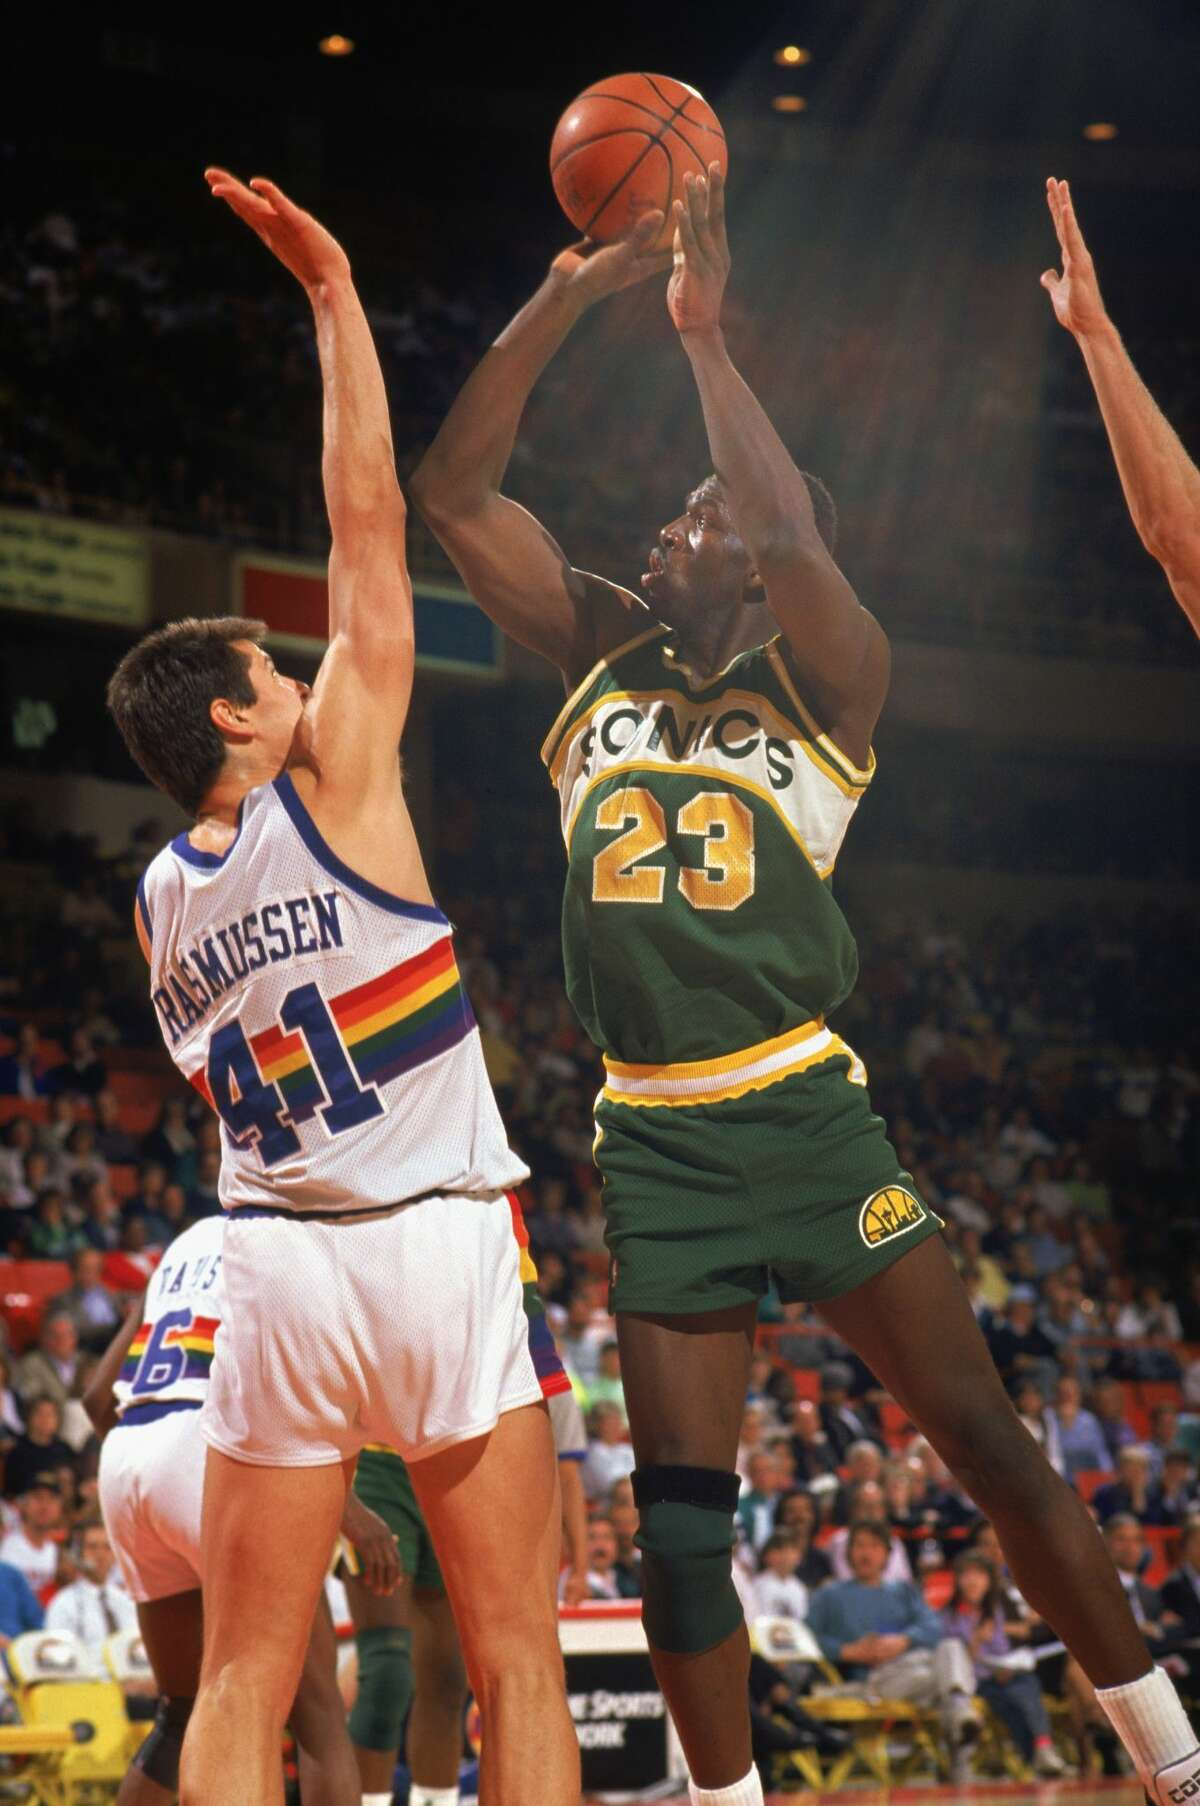 Auburn Blair Rasmussen (NBA): Rausmussen, who was the 15th overall pick in the 1985 NBA draft, played six seasons with the Denver Nuggets (1985-91) and two seasons with the Atlanta Hawks (1991-93). The 7-foot center averaged 12.5 points, 9.7 rebounds and 1.9 blocks per game in '90-91 with Denver -- his best statistical year as a pro.